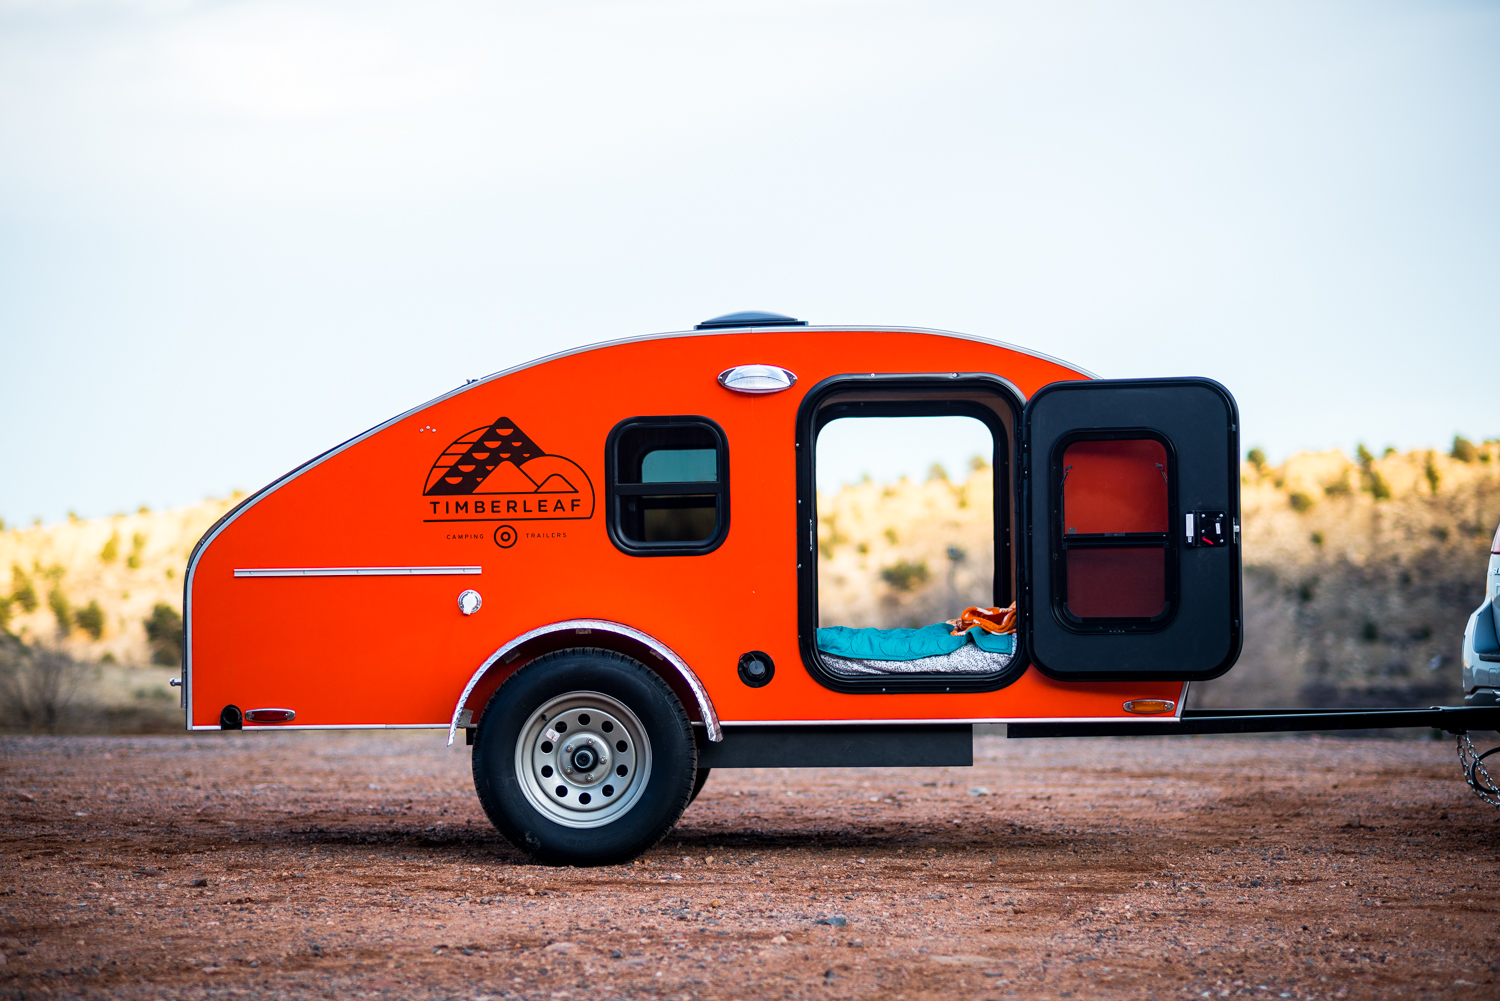 Below Are Some Of My Favourite Teardrop Campers On The Market: